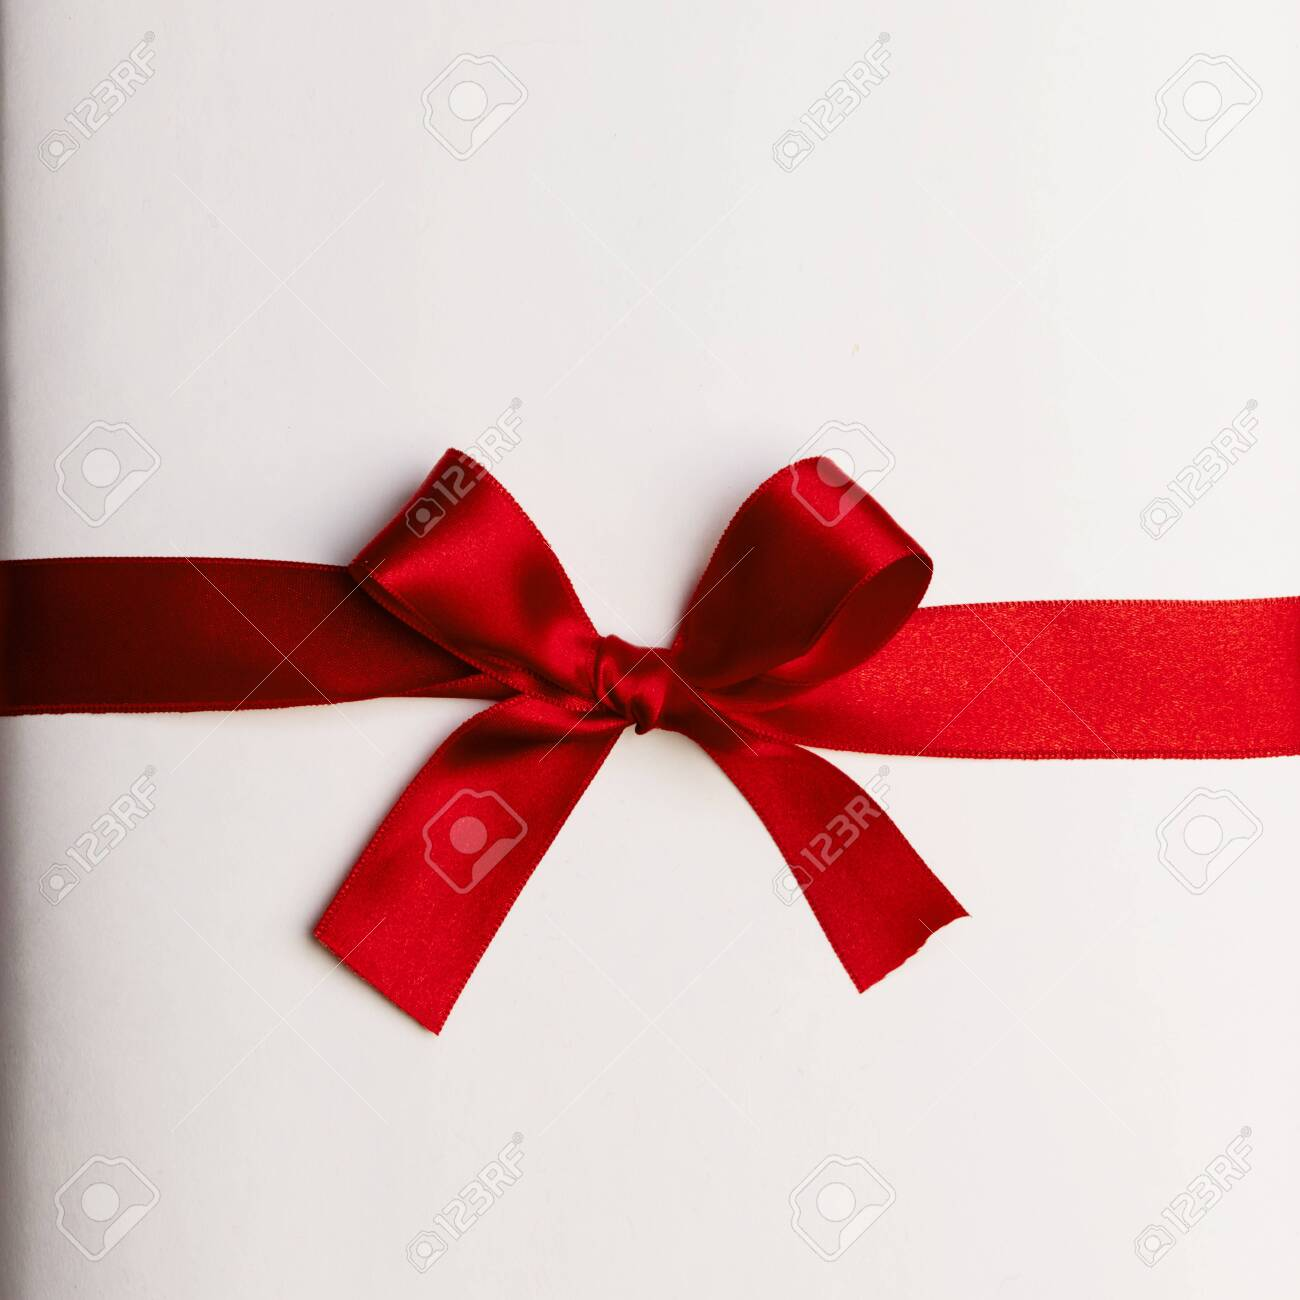 Red gift bow on white background - 131569433